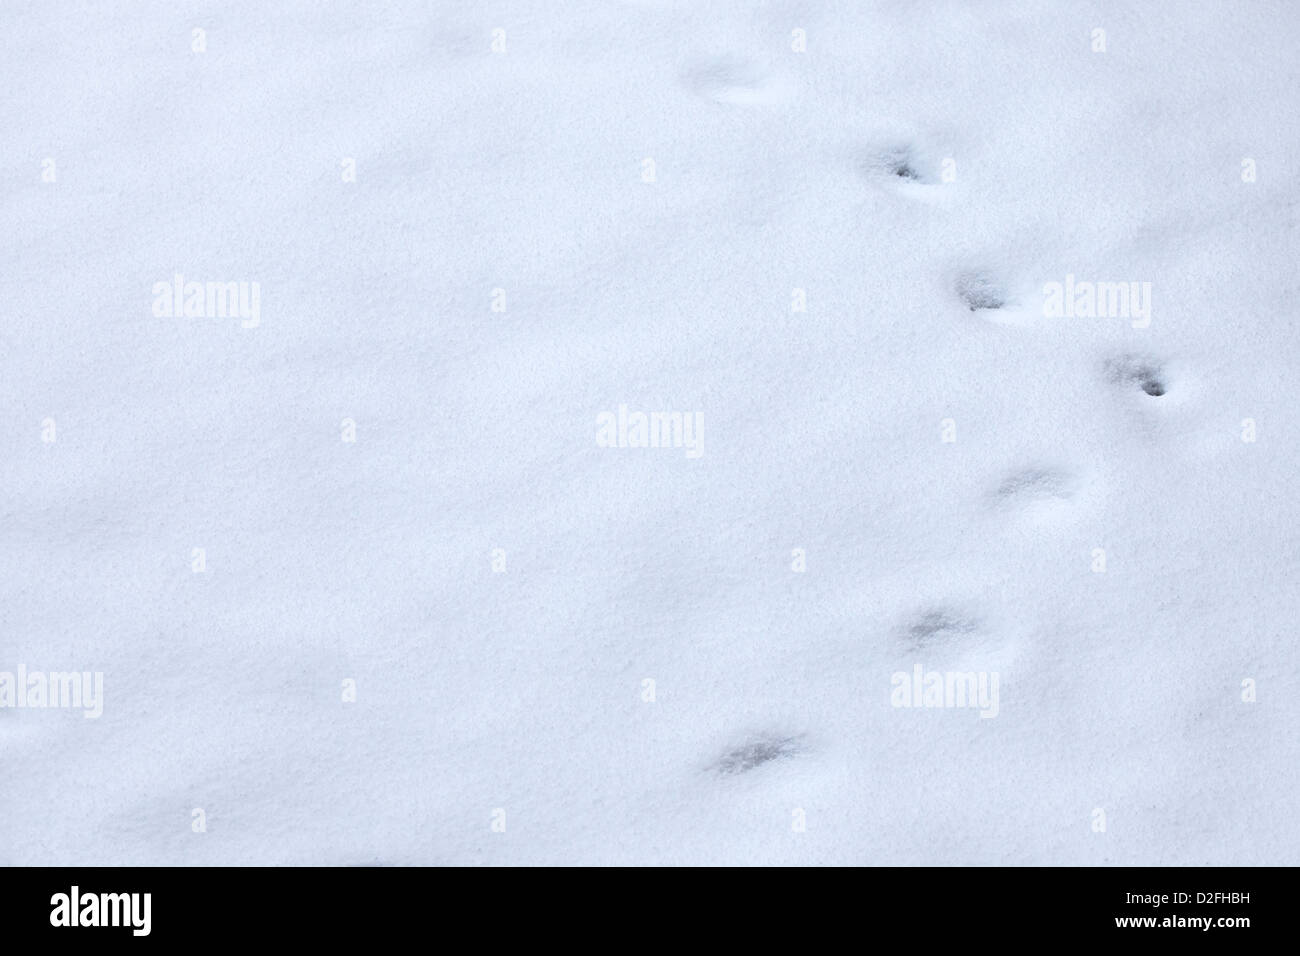 winter Animal tracks in snow - Stock Image